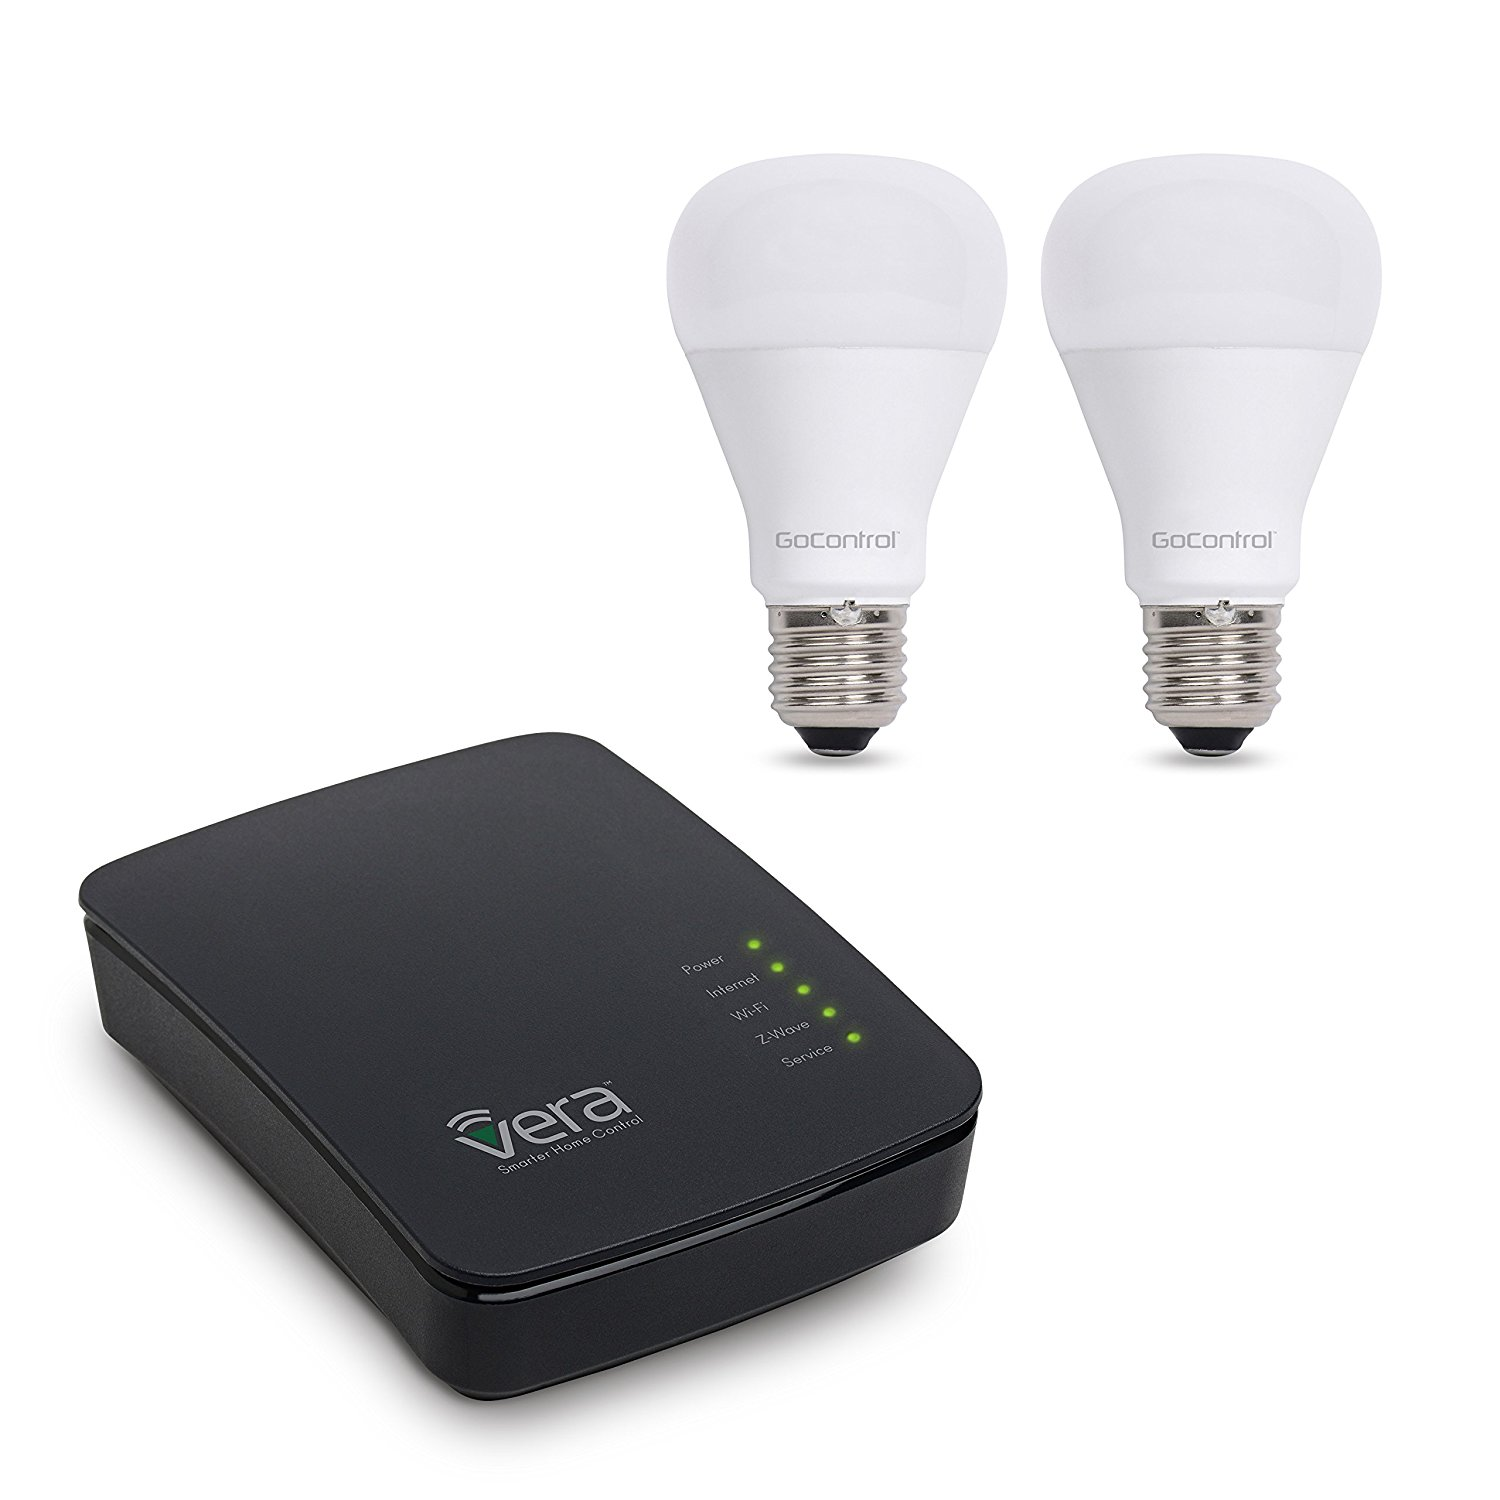 Vera Control Smart Lighting Essentials Starter Kit